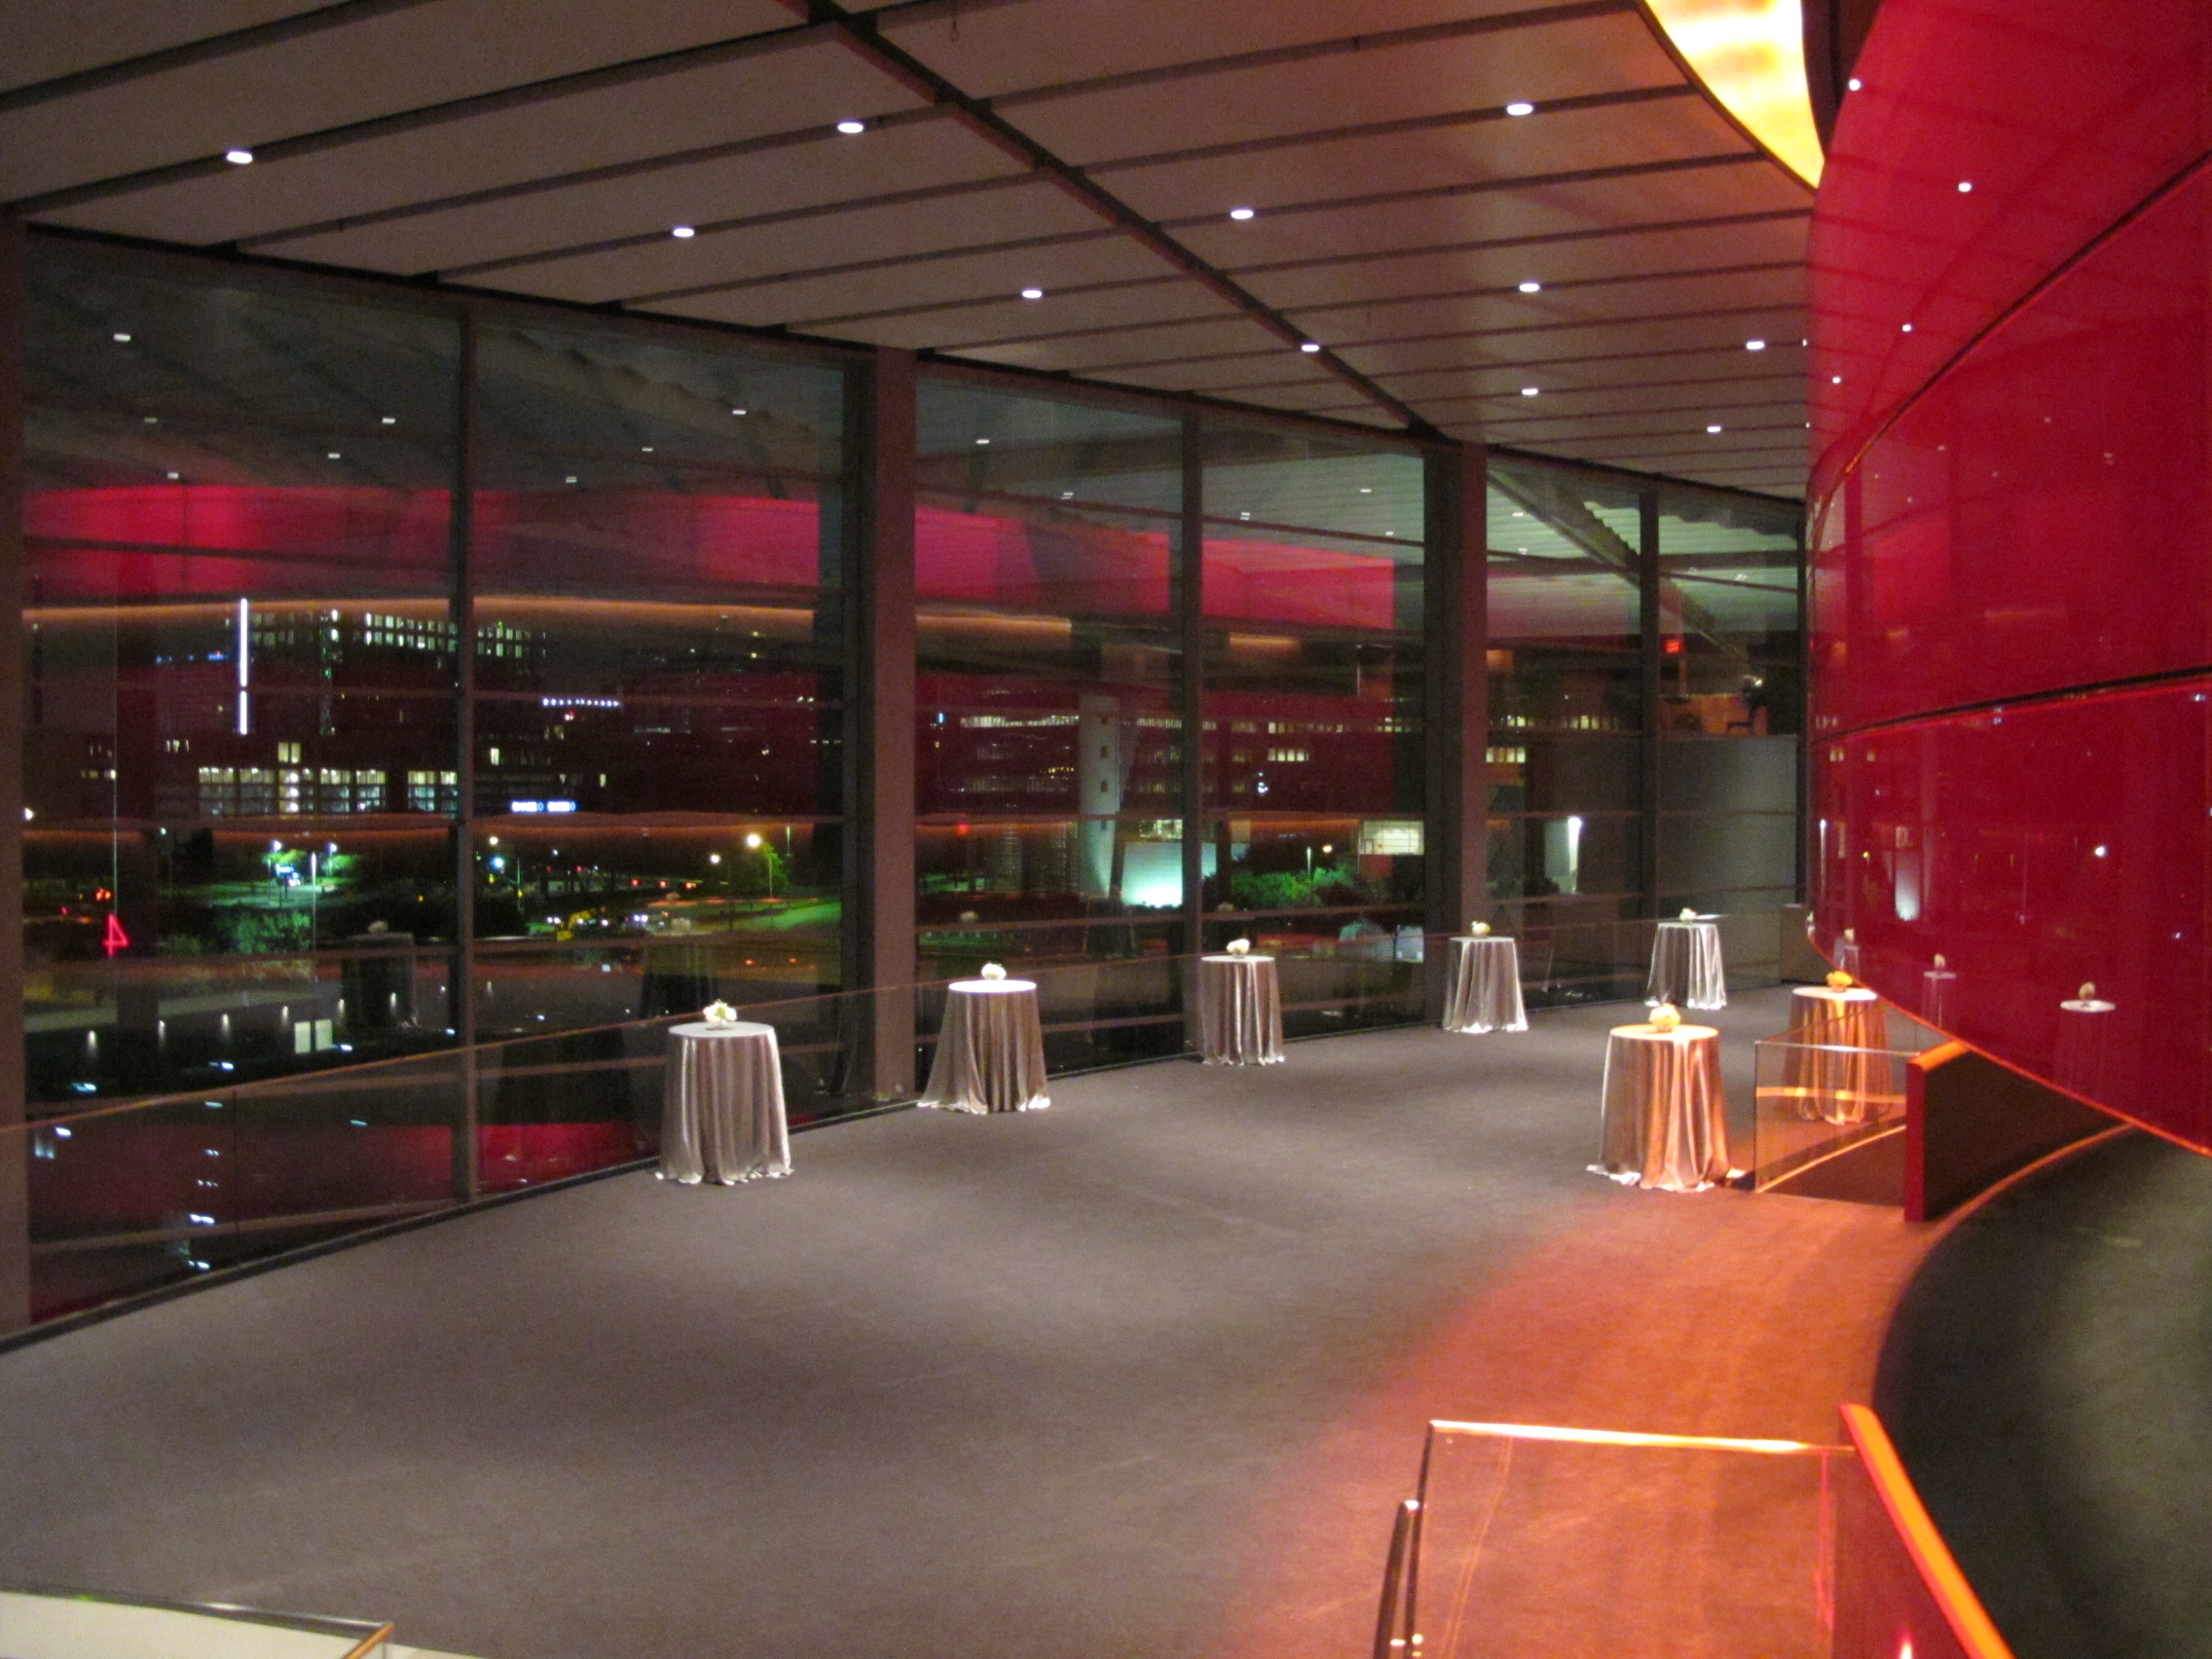 Skyline Terrace - Winspear Opera House